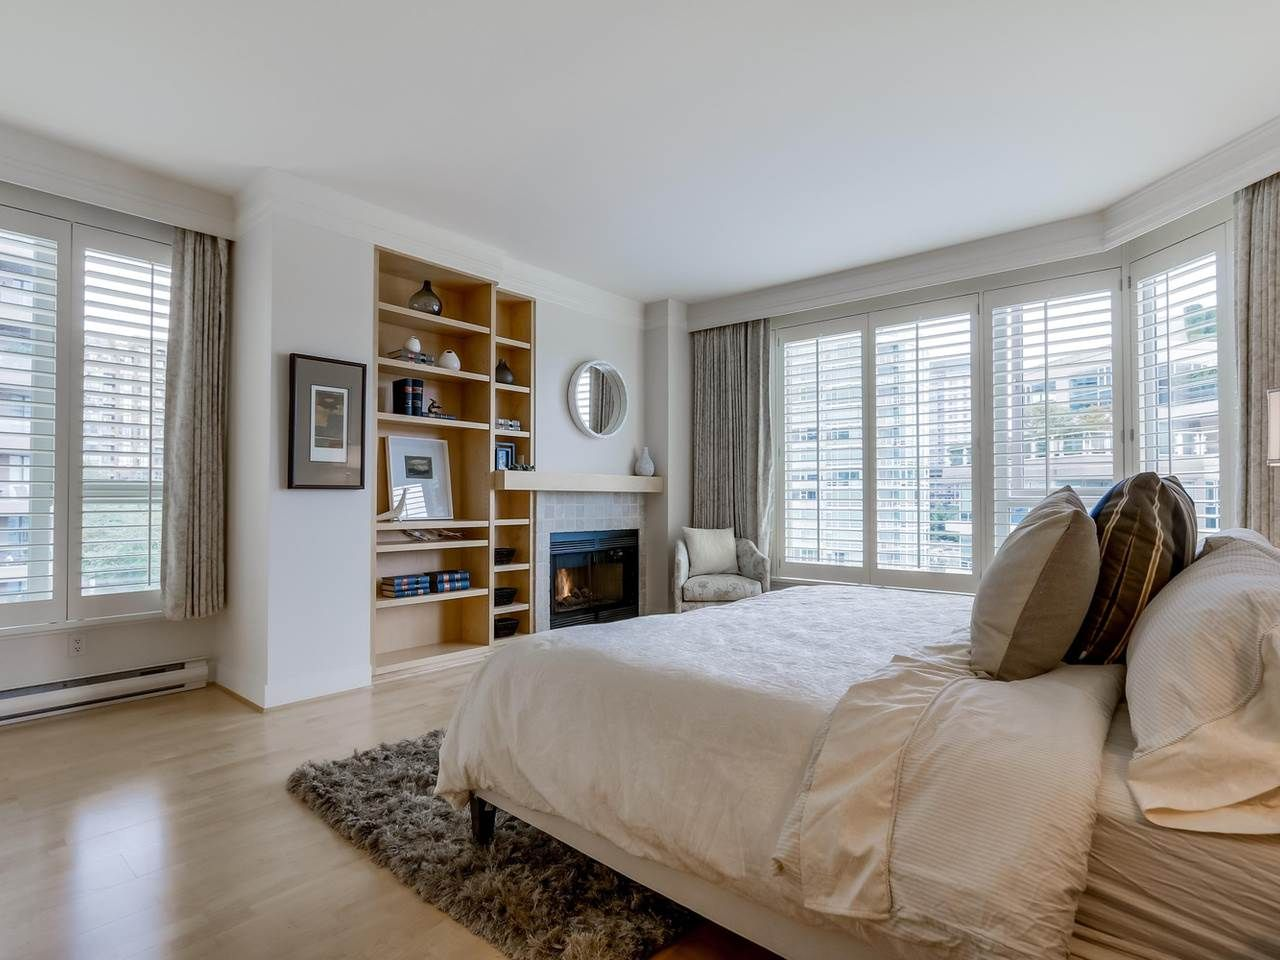 """Photo 16: Photos: 800 1675 HORNBY Street in Vancouver: Yaletown Condo for sale in """"SEAWALK SOUTH"""" (Vancouver West)  : MLS®# R2083569"""